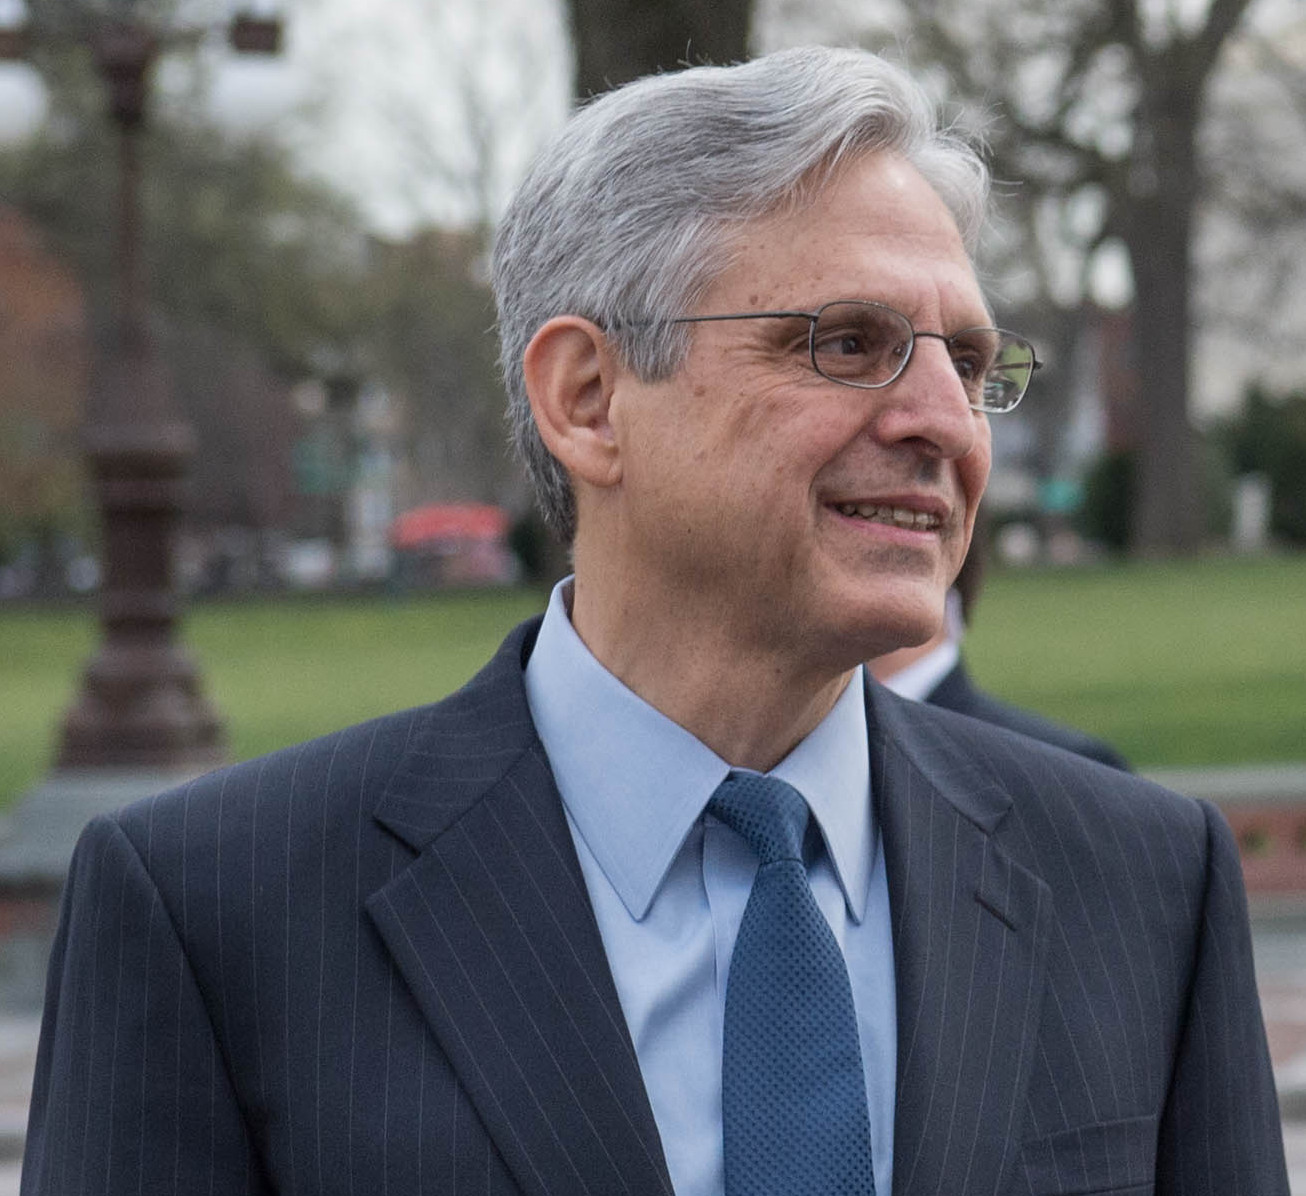 Letter Calls On Garland To Commit To Greater Transparency At DOJ